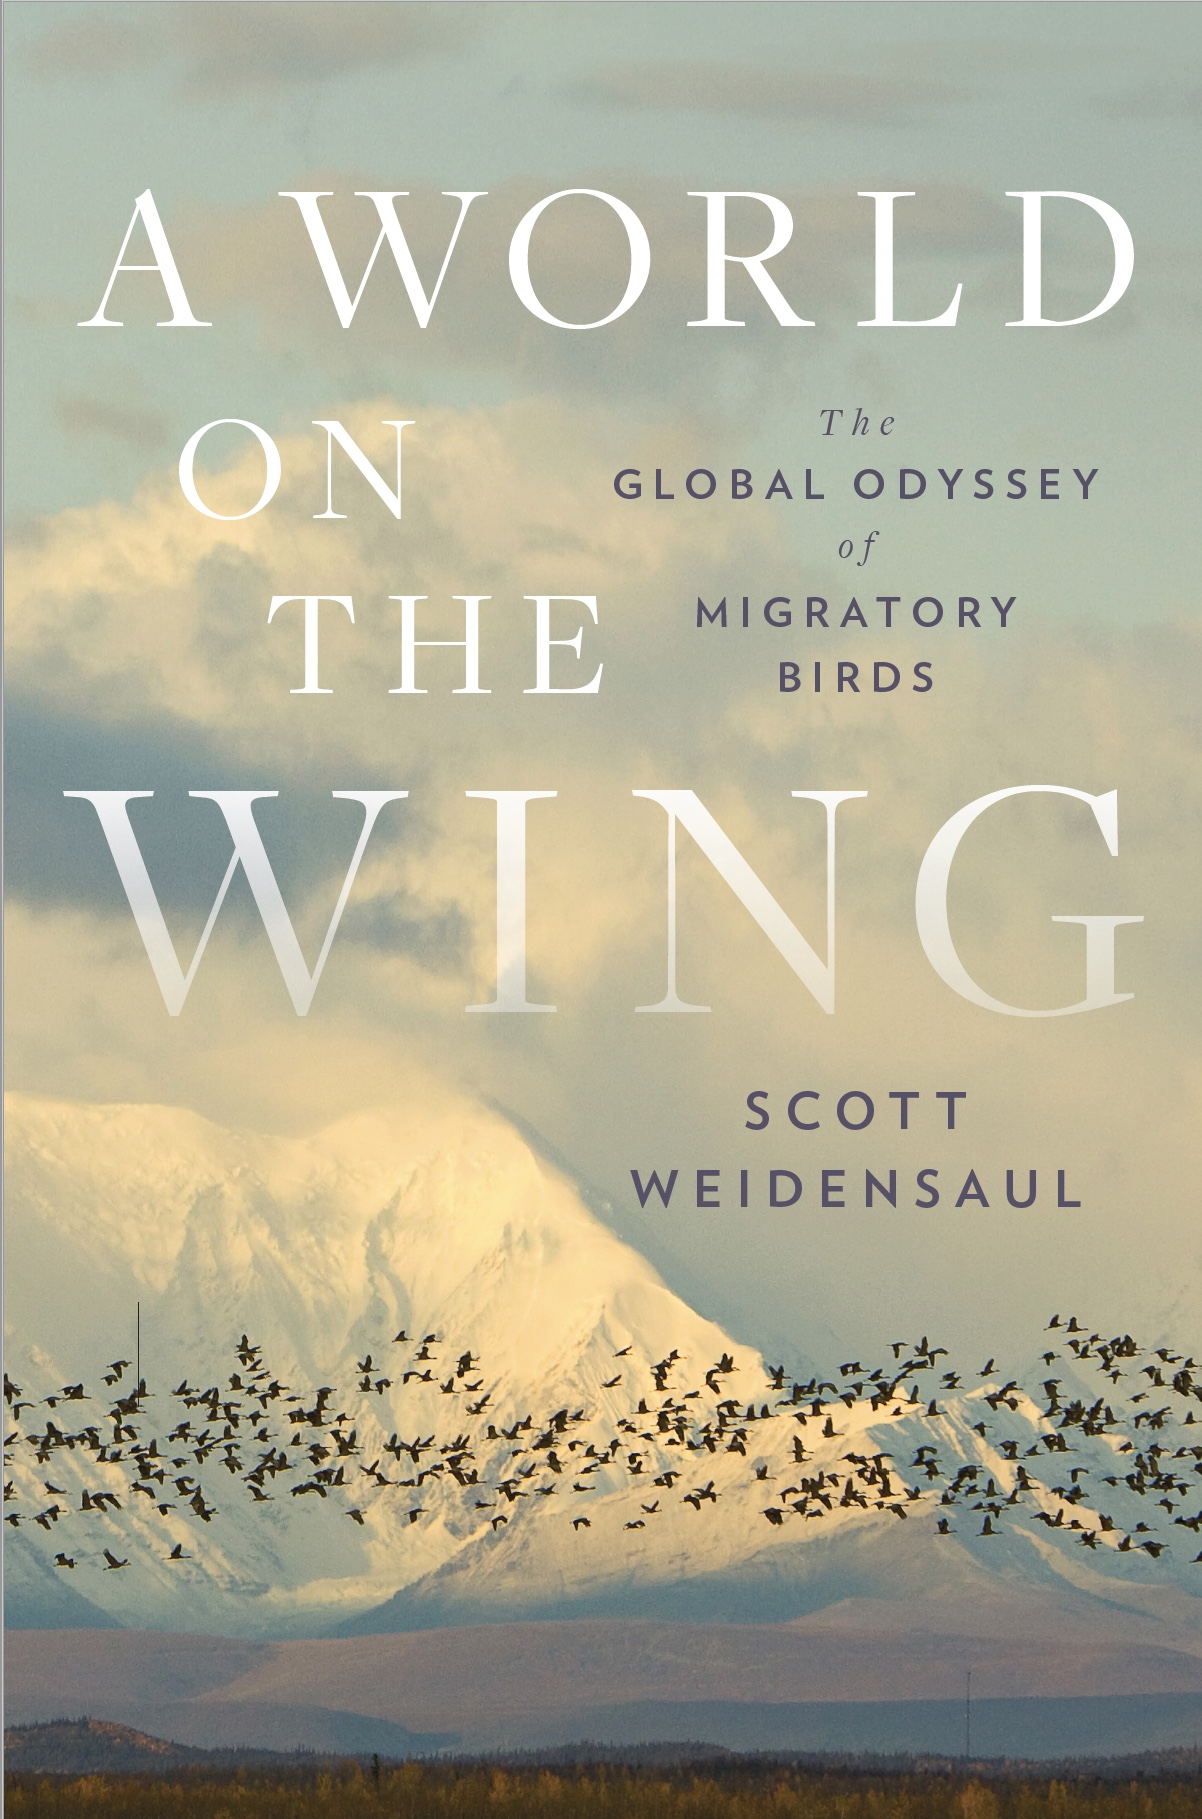 202107 WORLD ON THE WING jacket